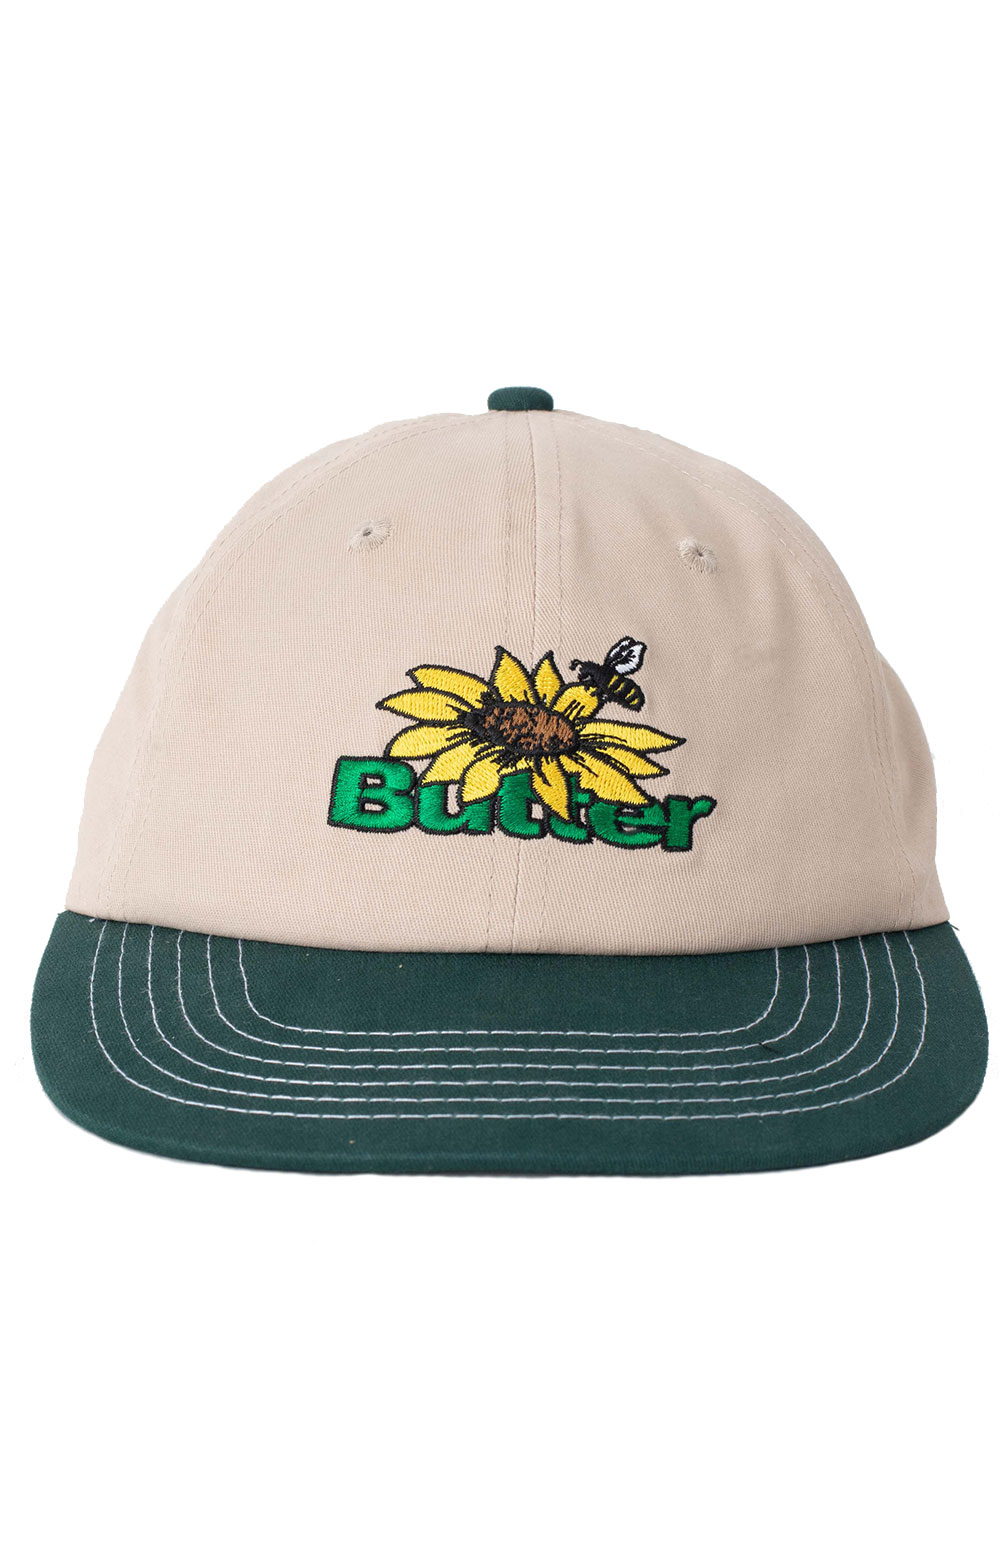 Sunflower 6 Panel Hat - Natural/Forest  2